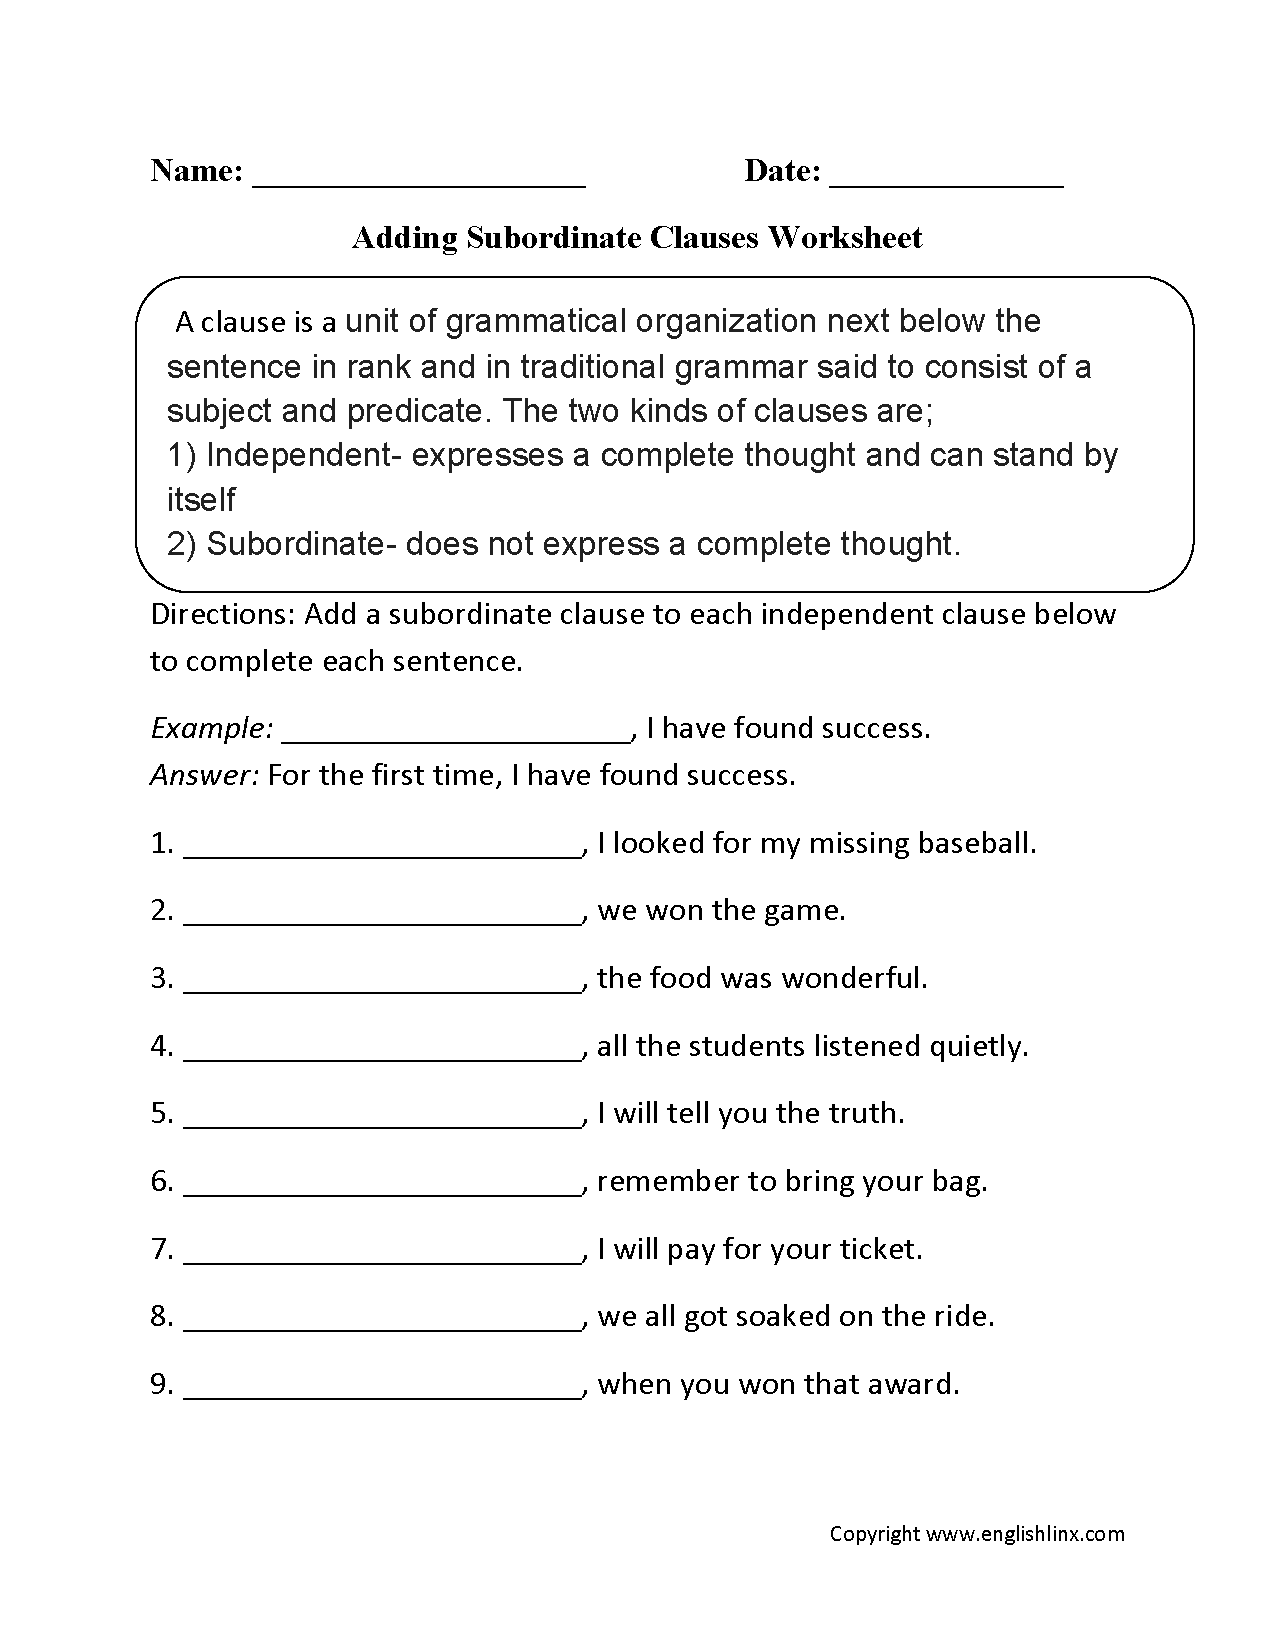 worksheet Subordinate Clause Worksheet clauses worksheets adding subordinate worksheet worksheet